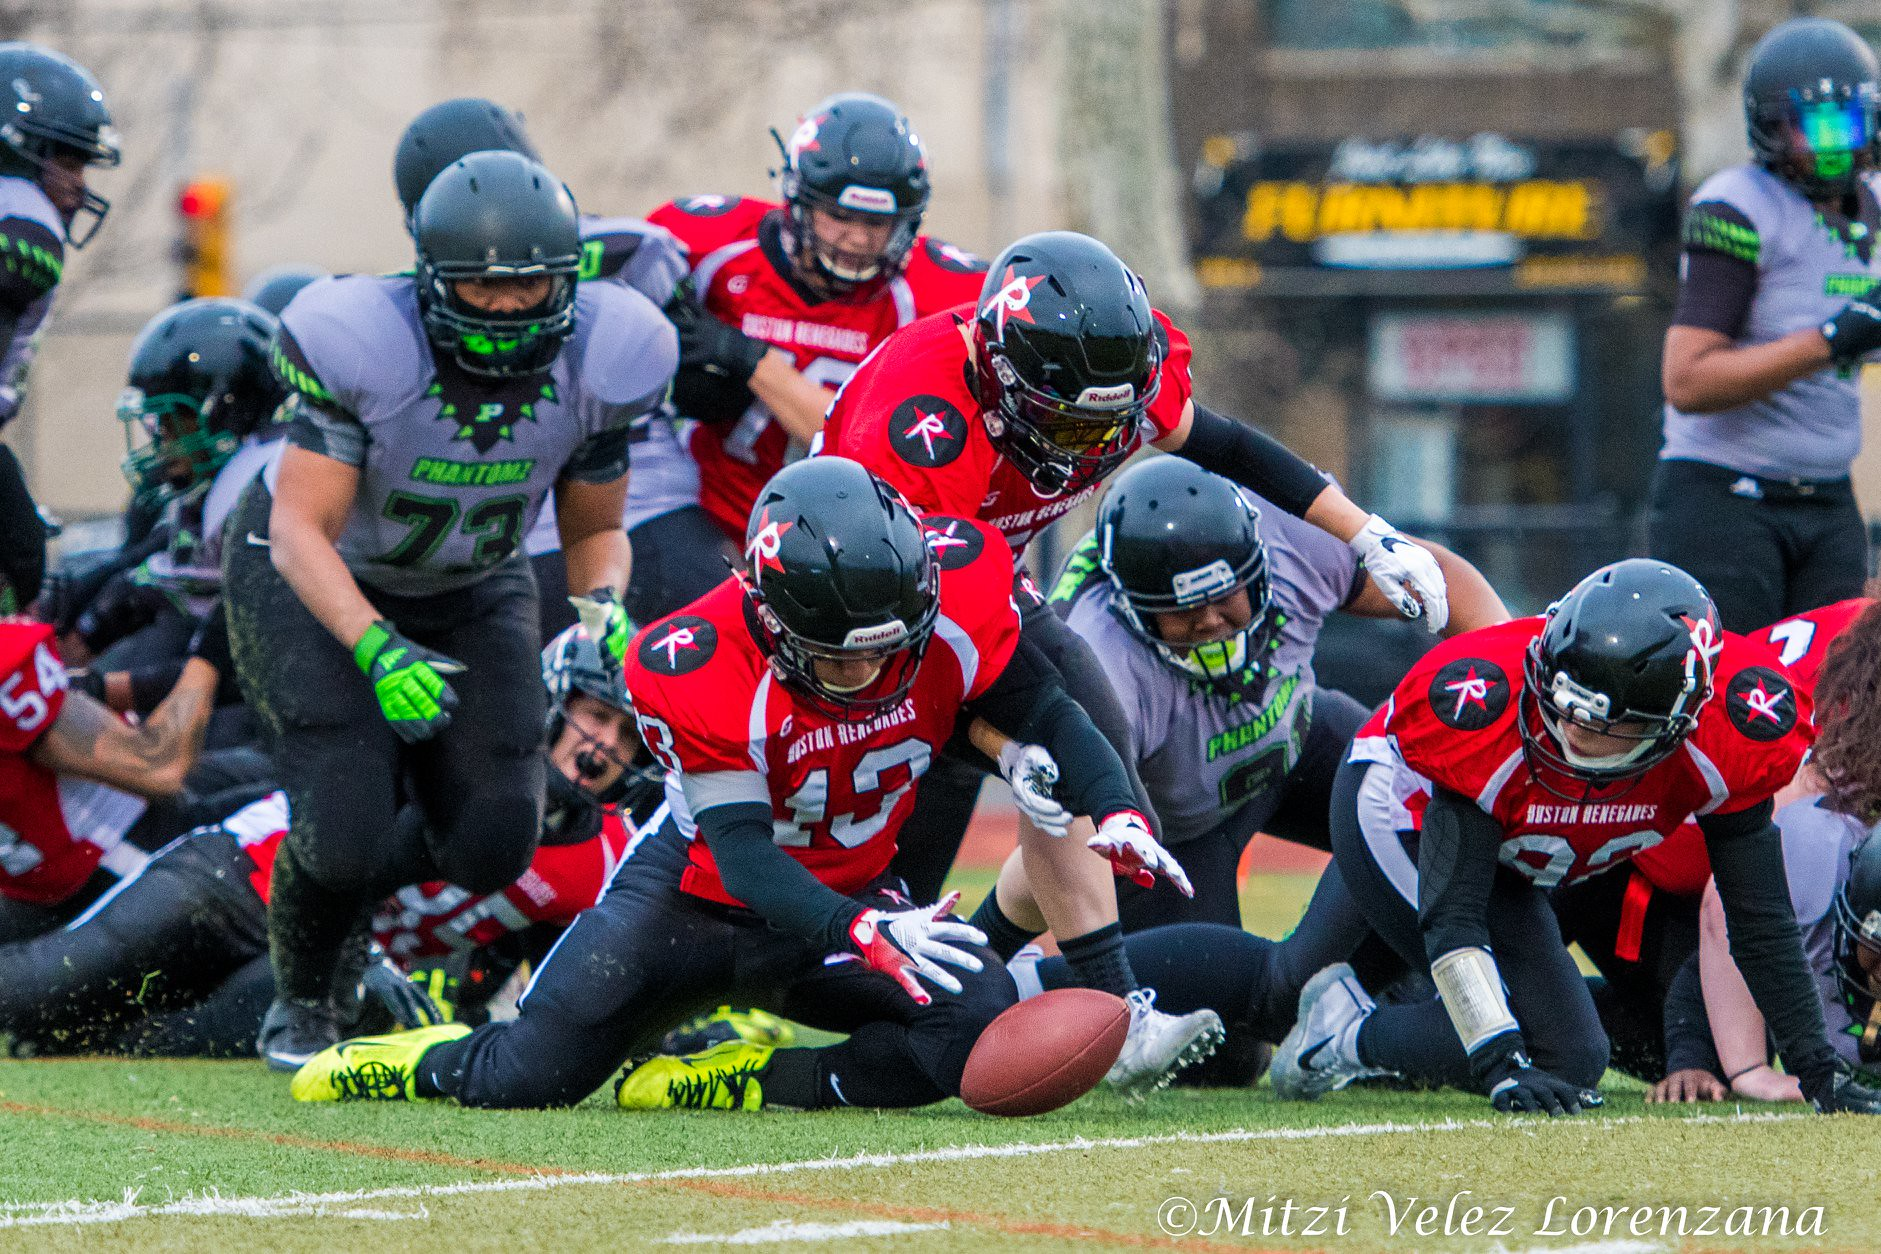 Mocha Torres of the Boston Renegades recovers a fumble